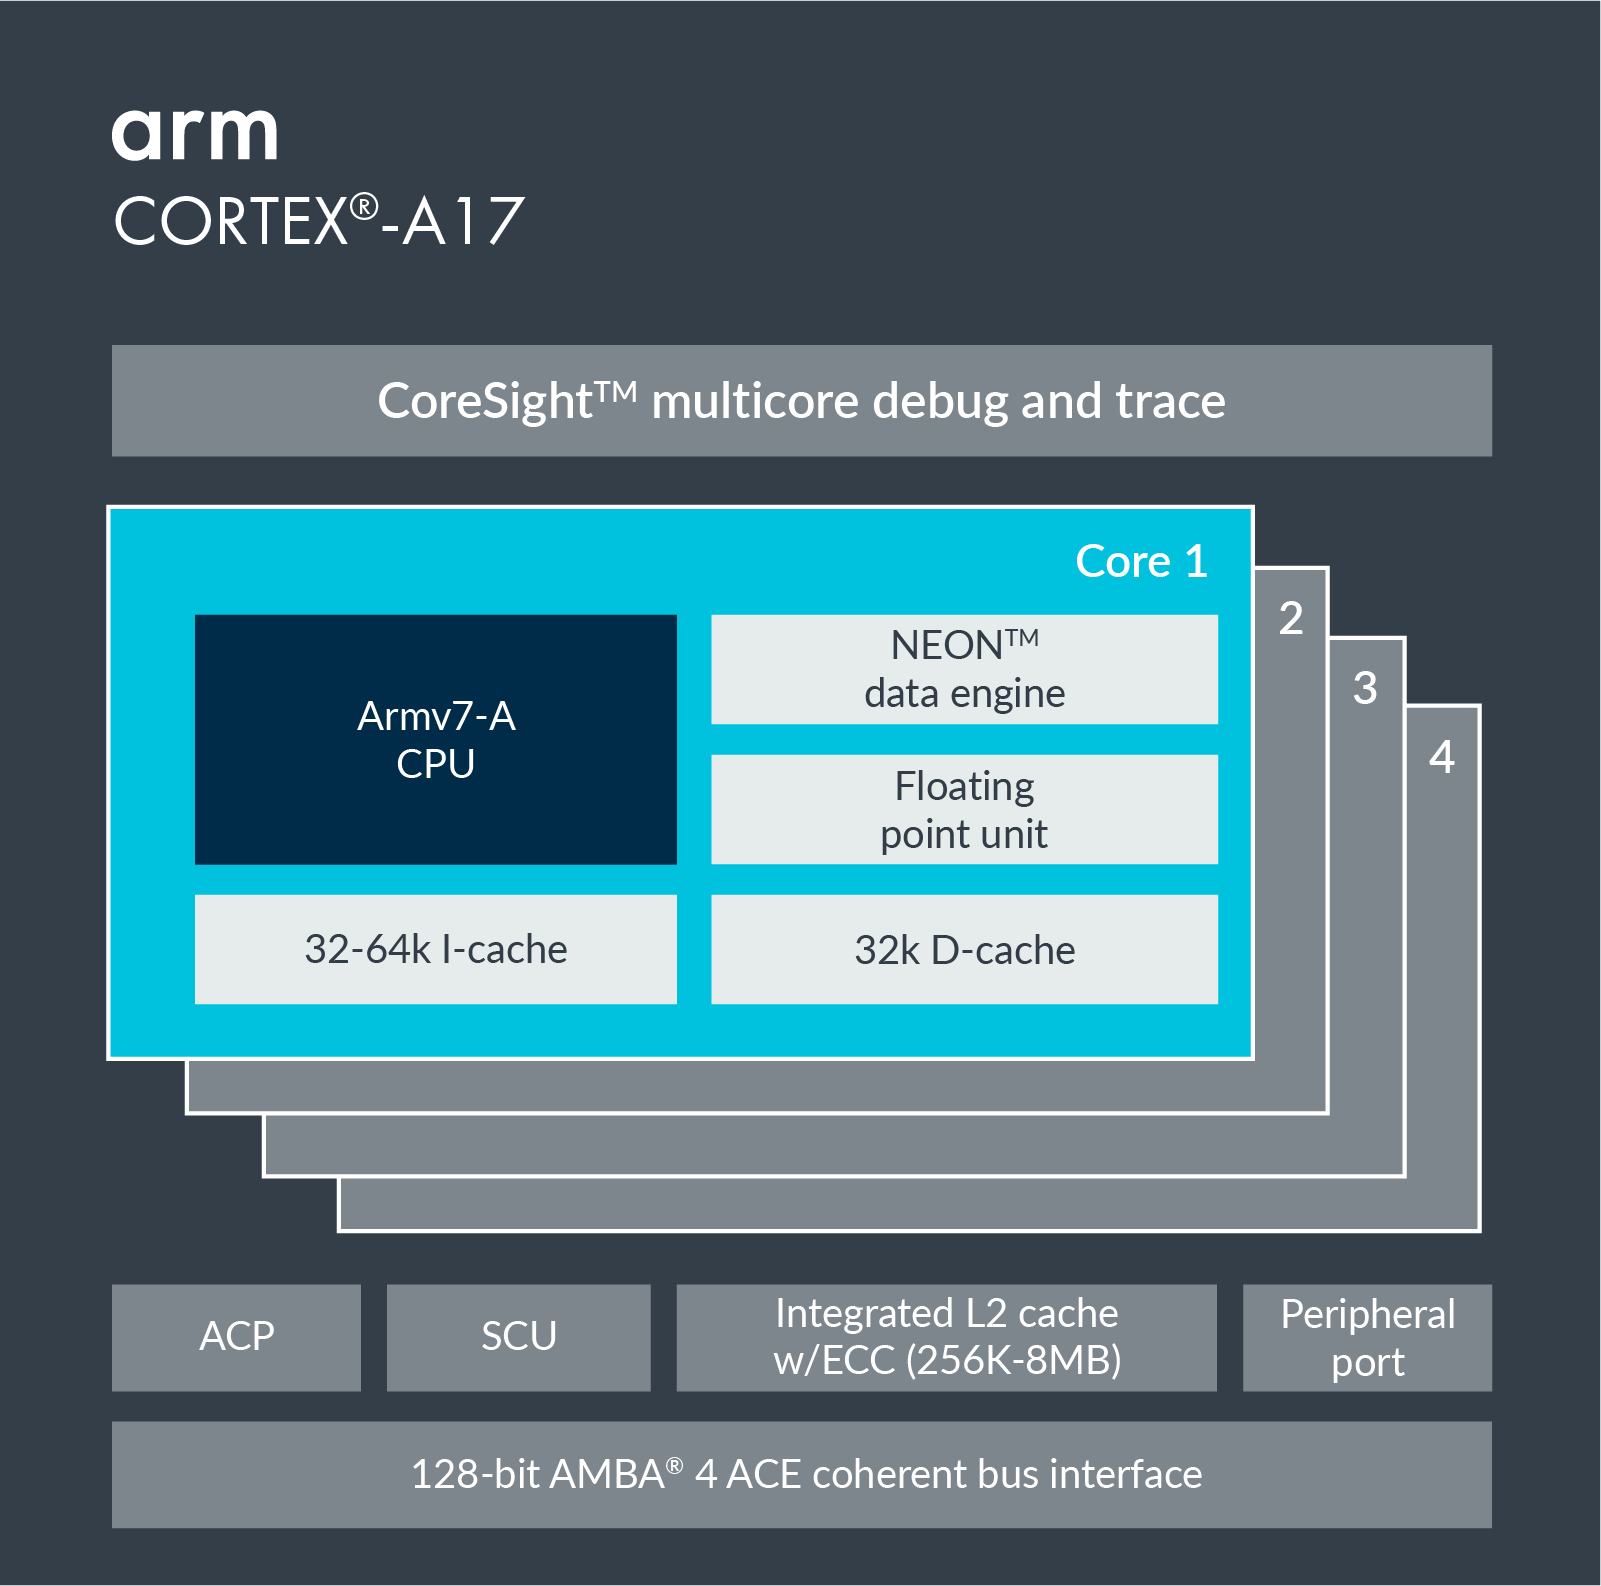 Information on Cortex-A17.